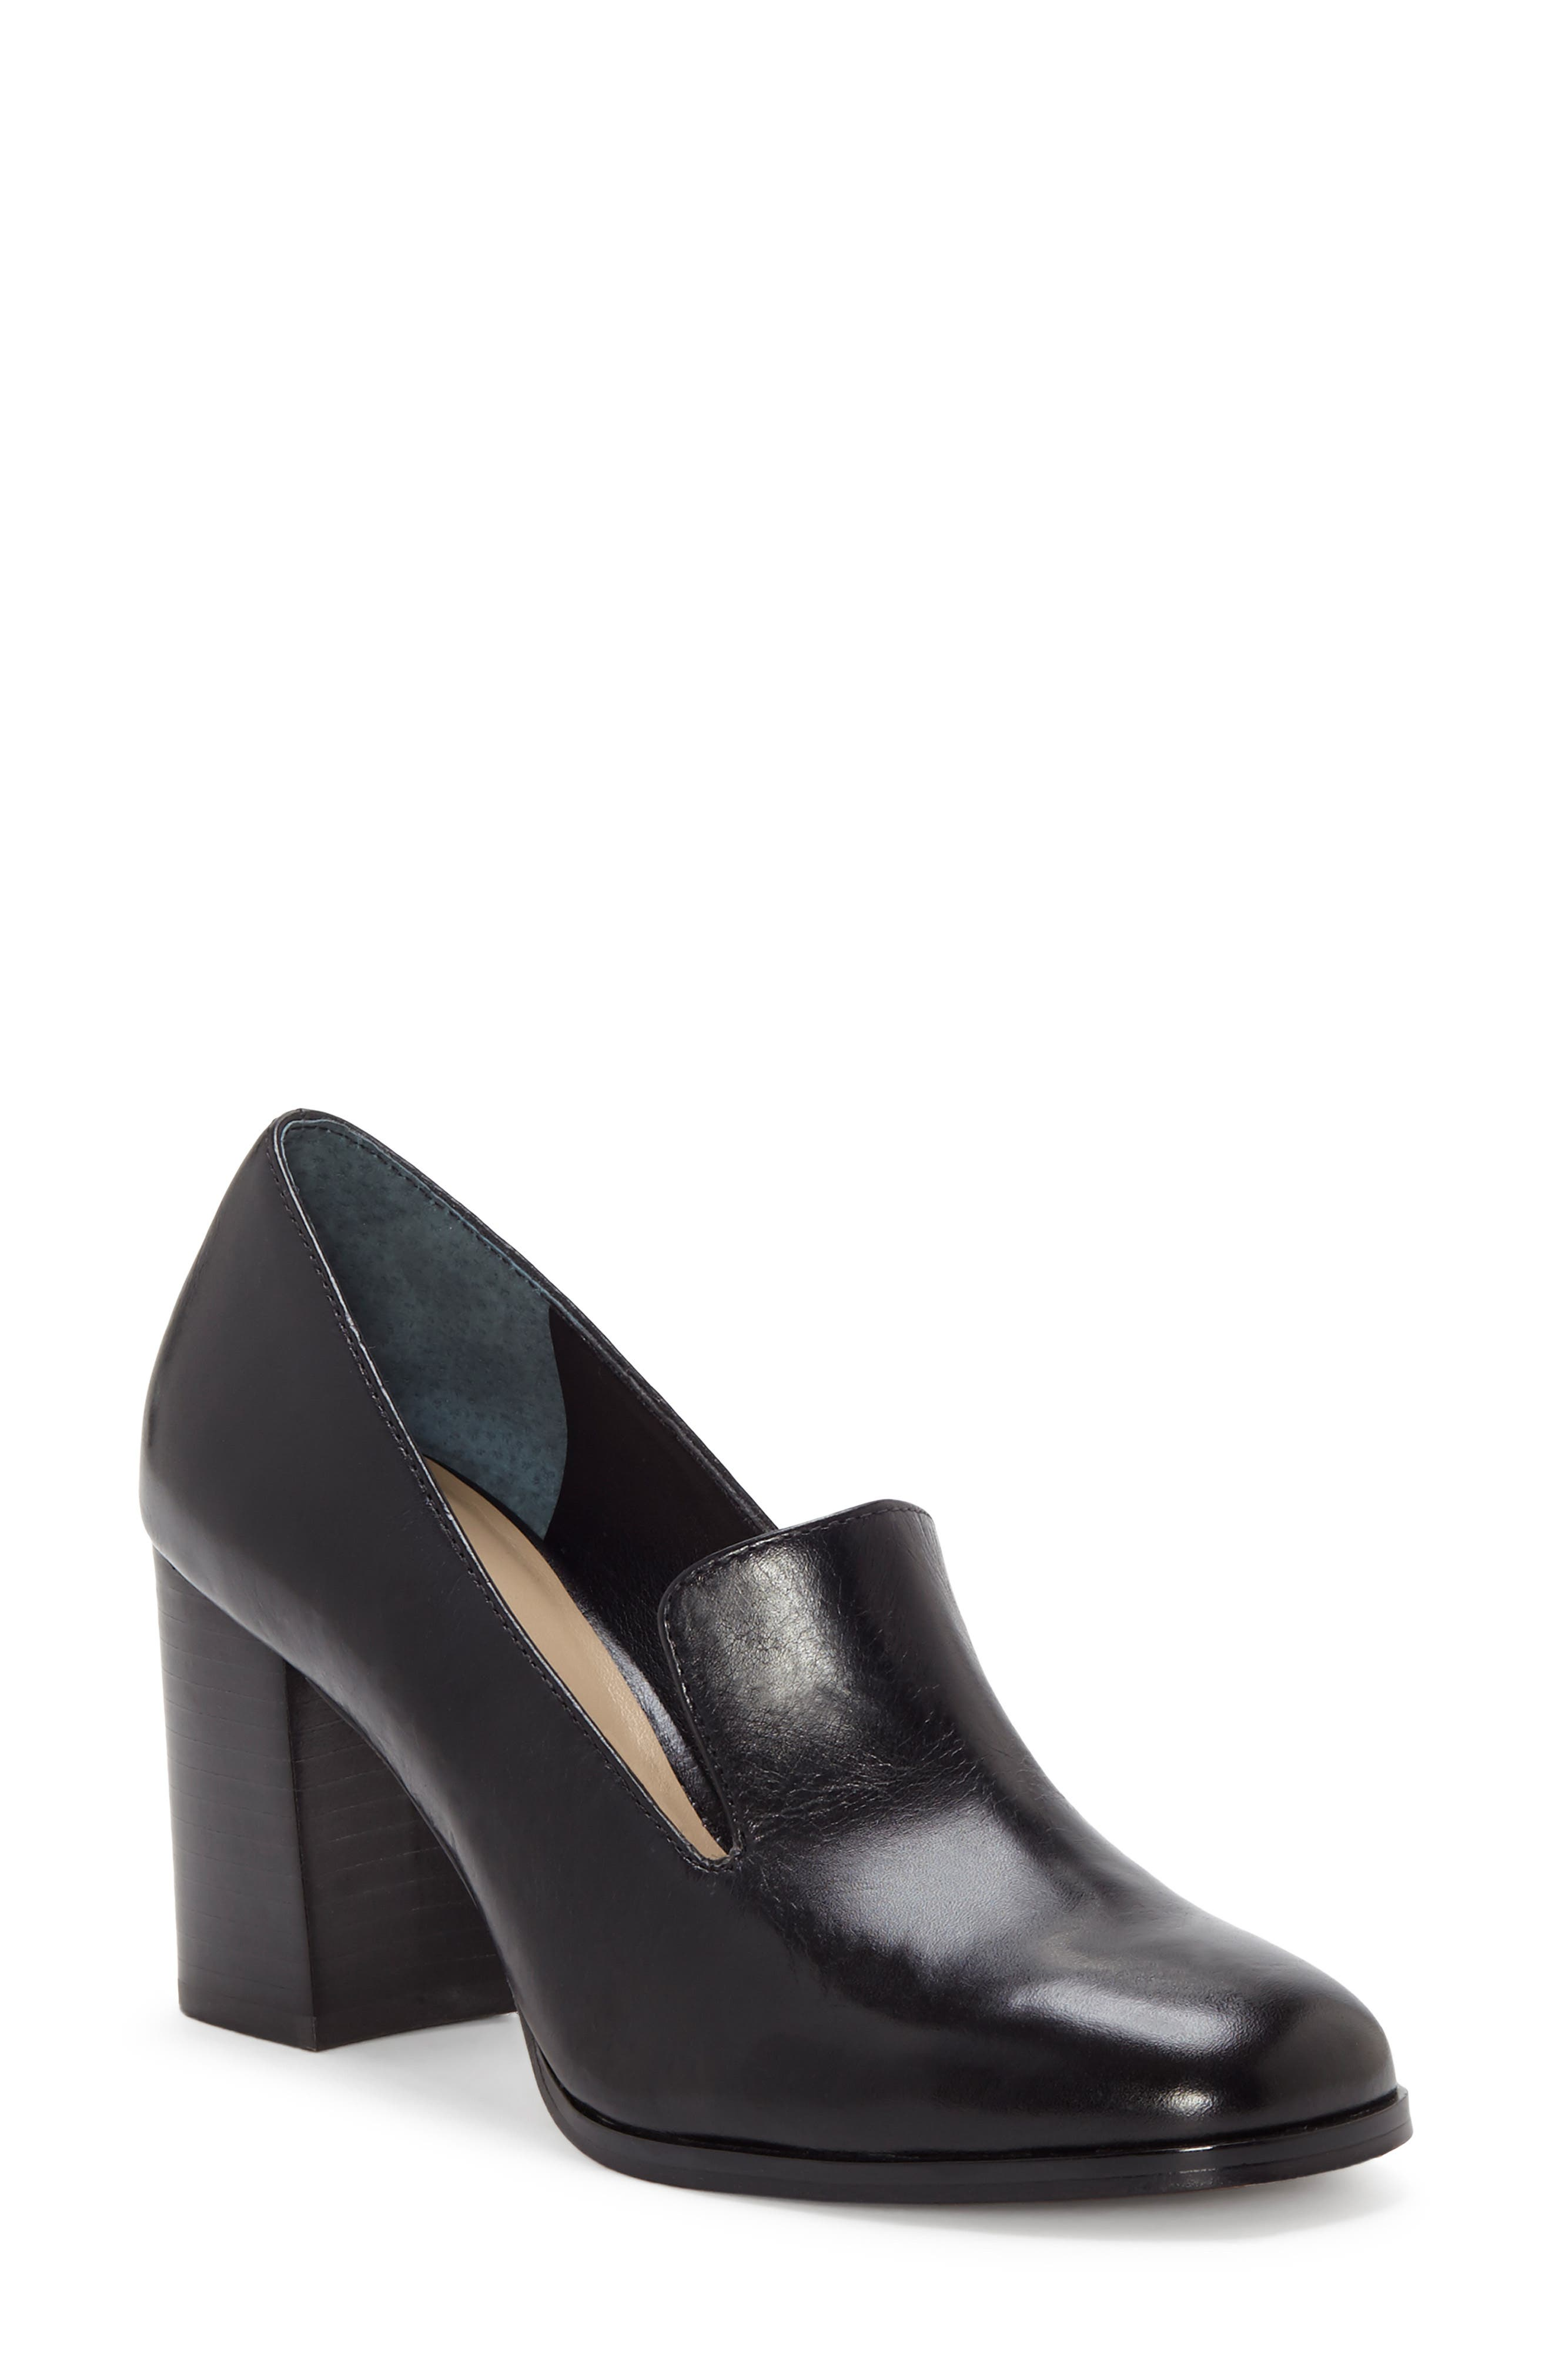 a2afba2062c4 Women s Enzo Angiolini Shoes